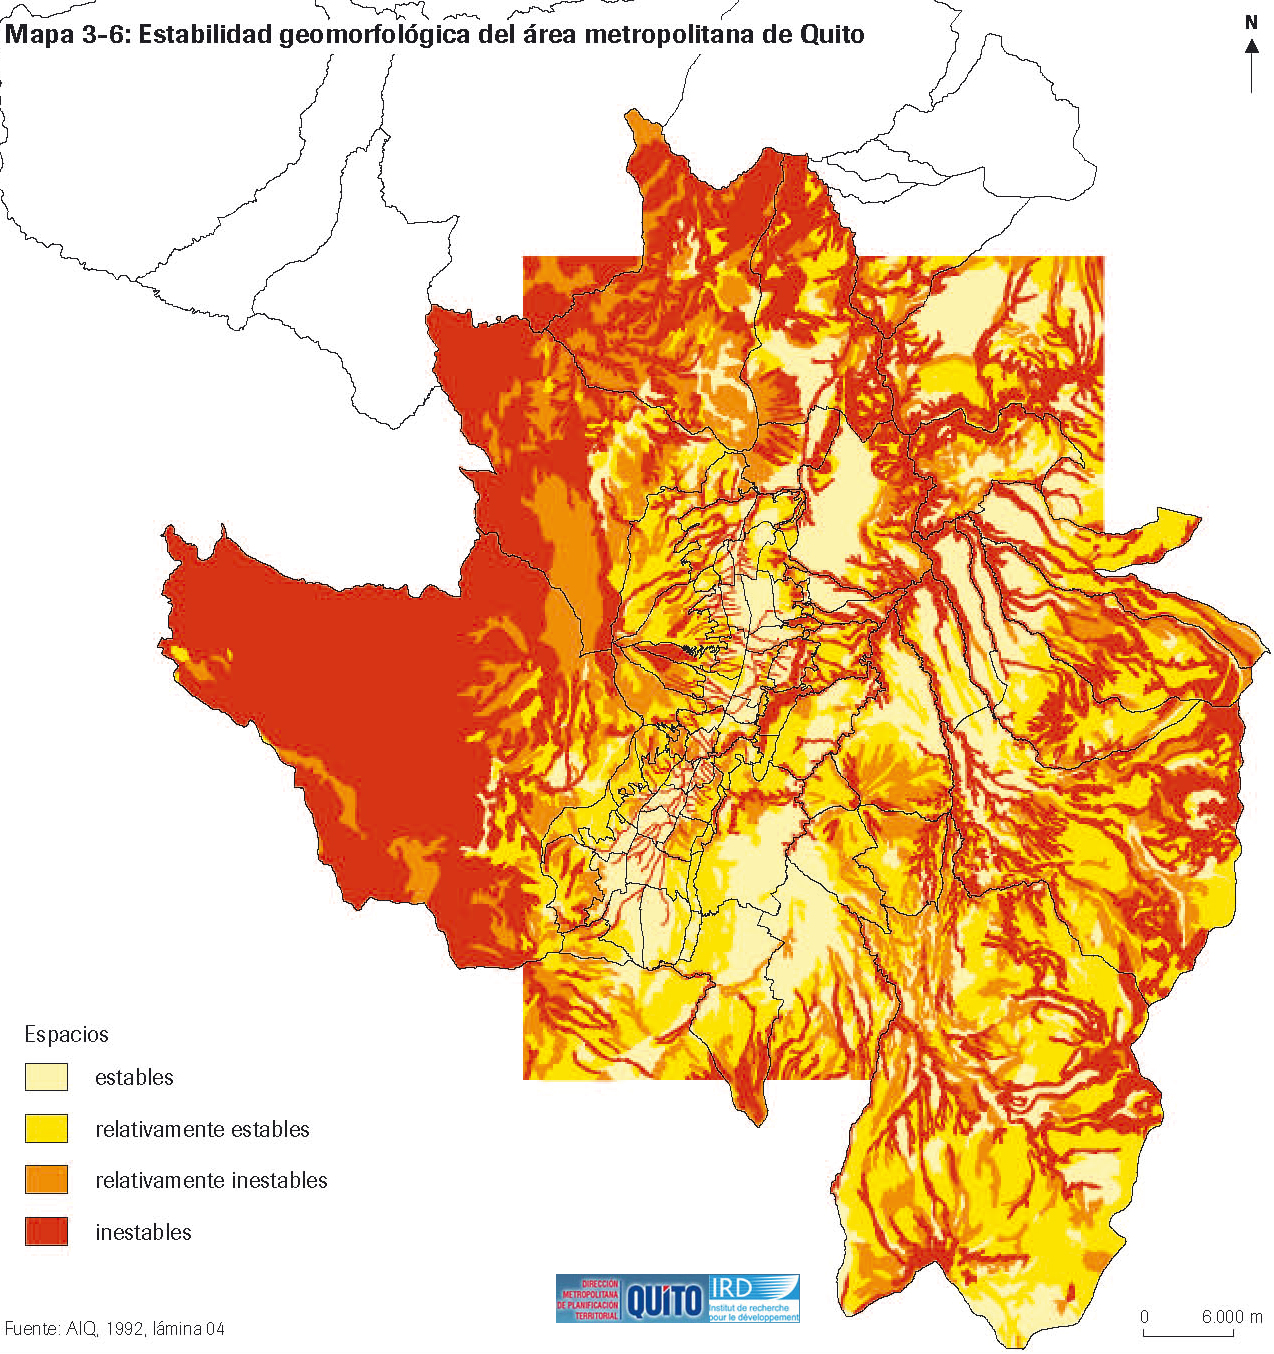 Geomorphological stability of the metropolitan area of Quito 1990